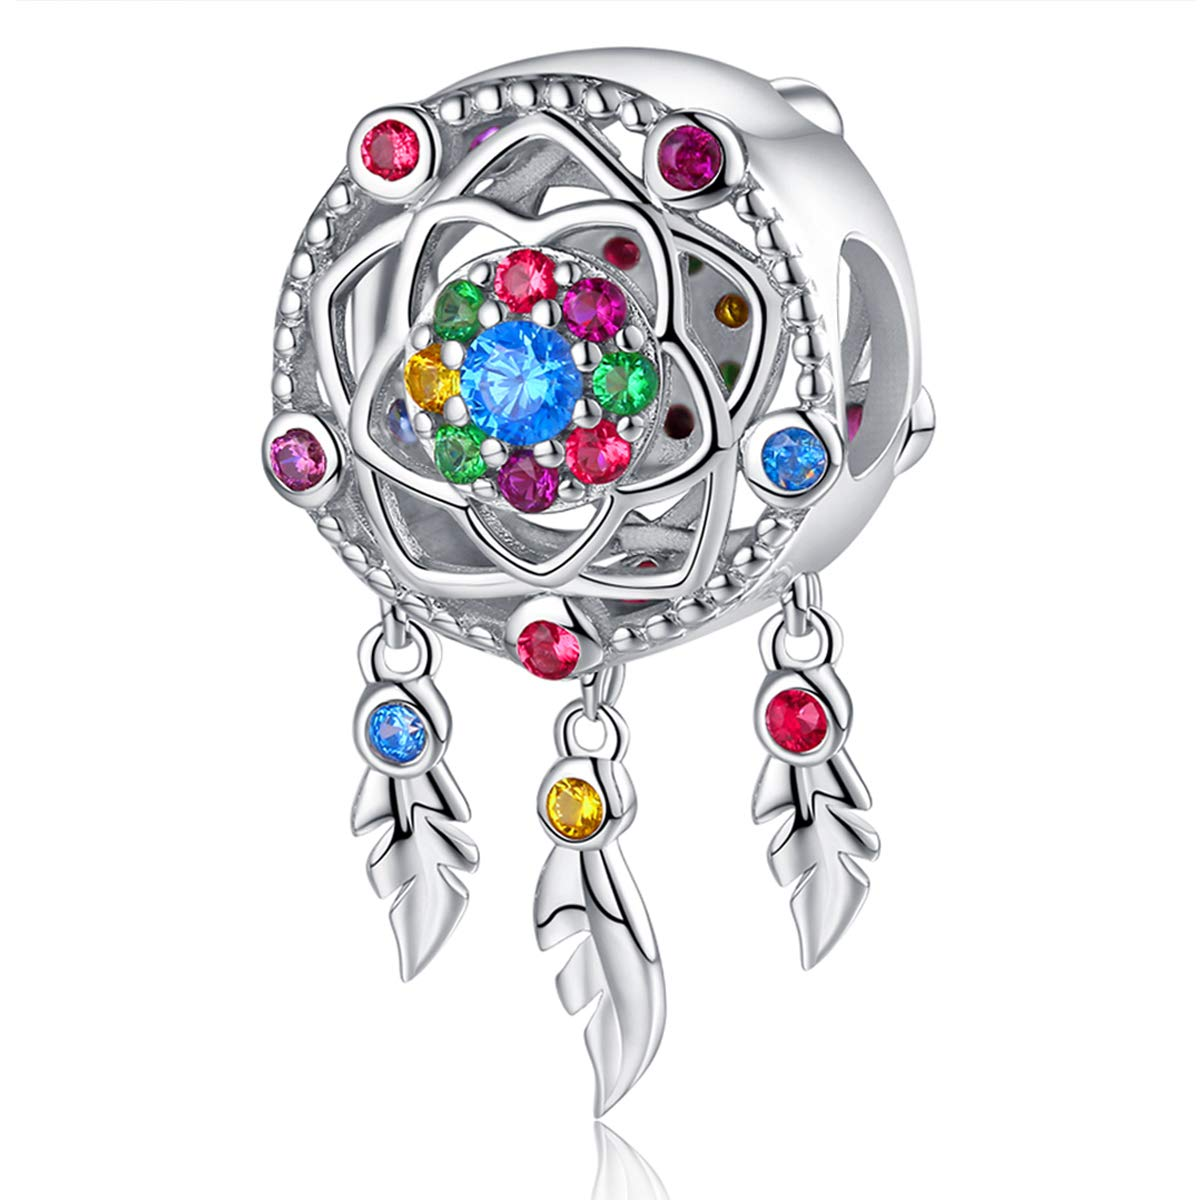 Dream Catcher Charm fit Pandora Charms Bracelet 925 Sterling Silver Feathers Tassel Bead Charm with Colorful Stones Pendant for European Bracelets Necklace FQ0047 (Dream Catcher Charm Colorful)